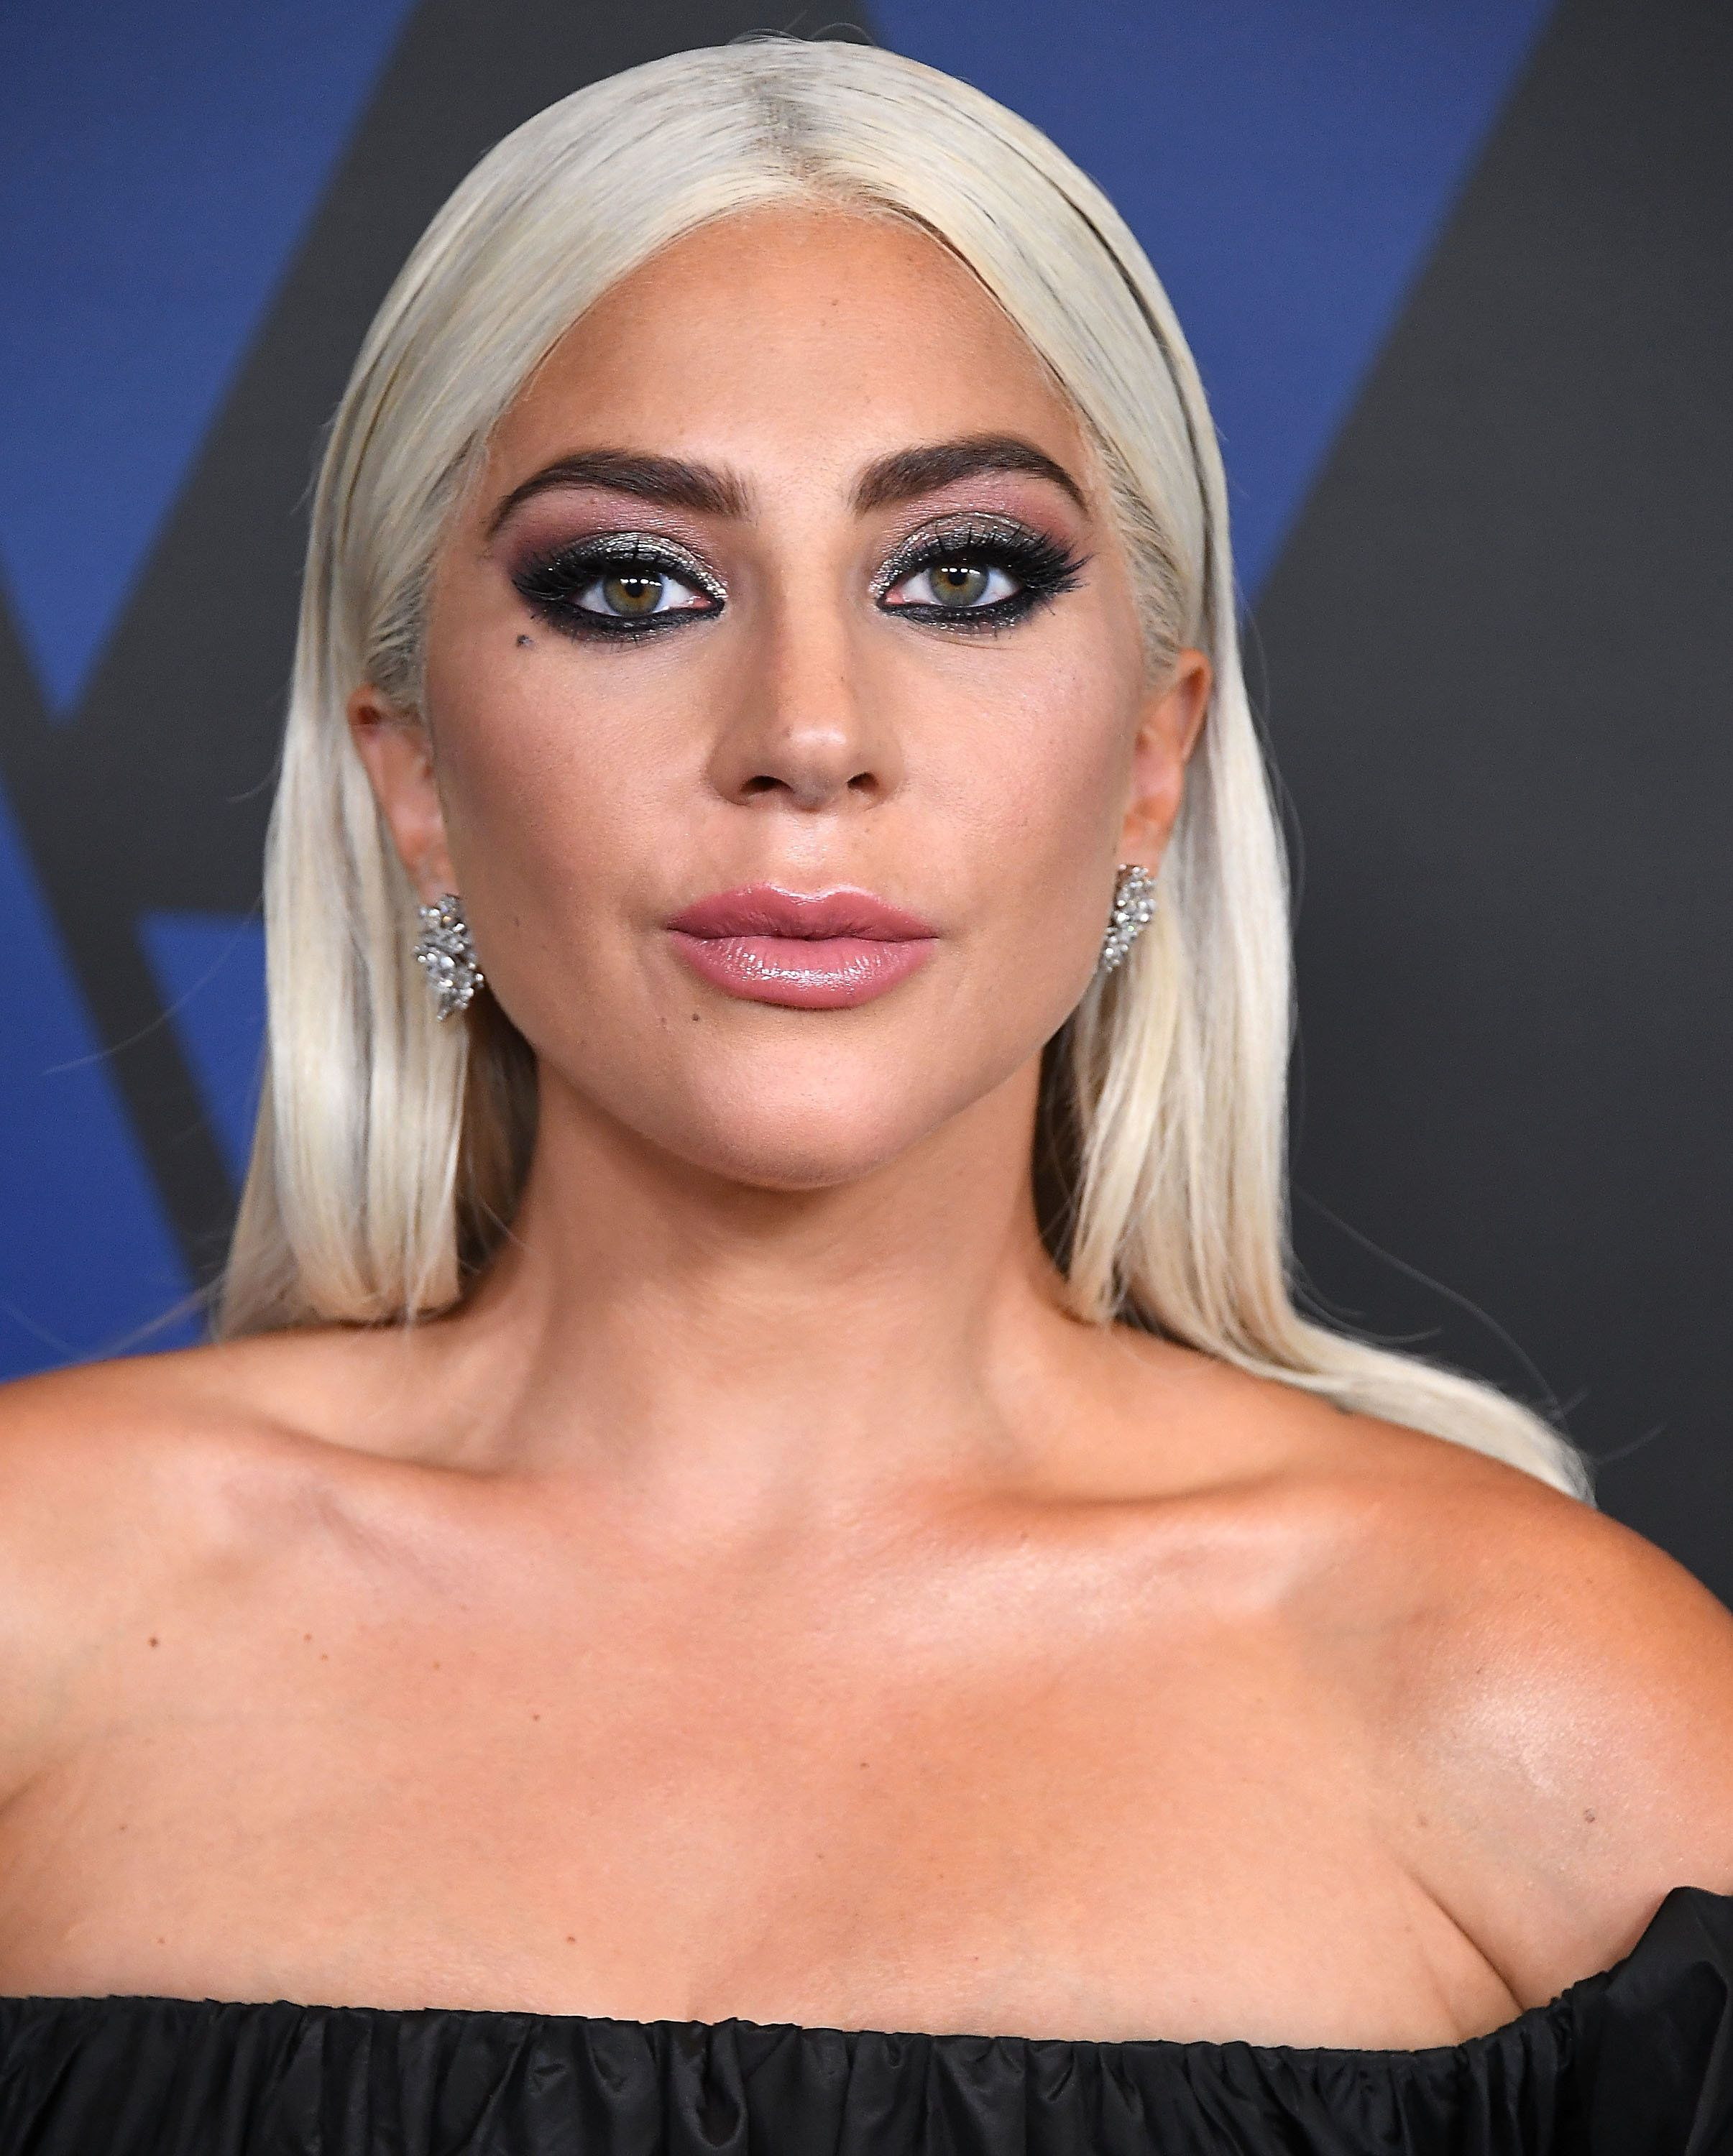 HOLLYWOOD, CA - NOVEMBER 18:  Lady Gaga arrives at the Academy Of Motion Picture Arts And Sciences' 10th Annual Governors Awards at The Ray Dolby Ballroom at Hollywood & Highland Center on November 18, 2018 in Hollywood, California.  (Photo by Steve Granitz/WireImage)